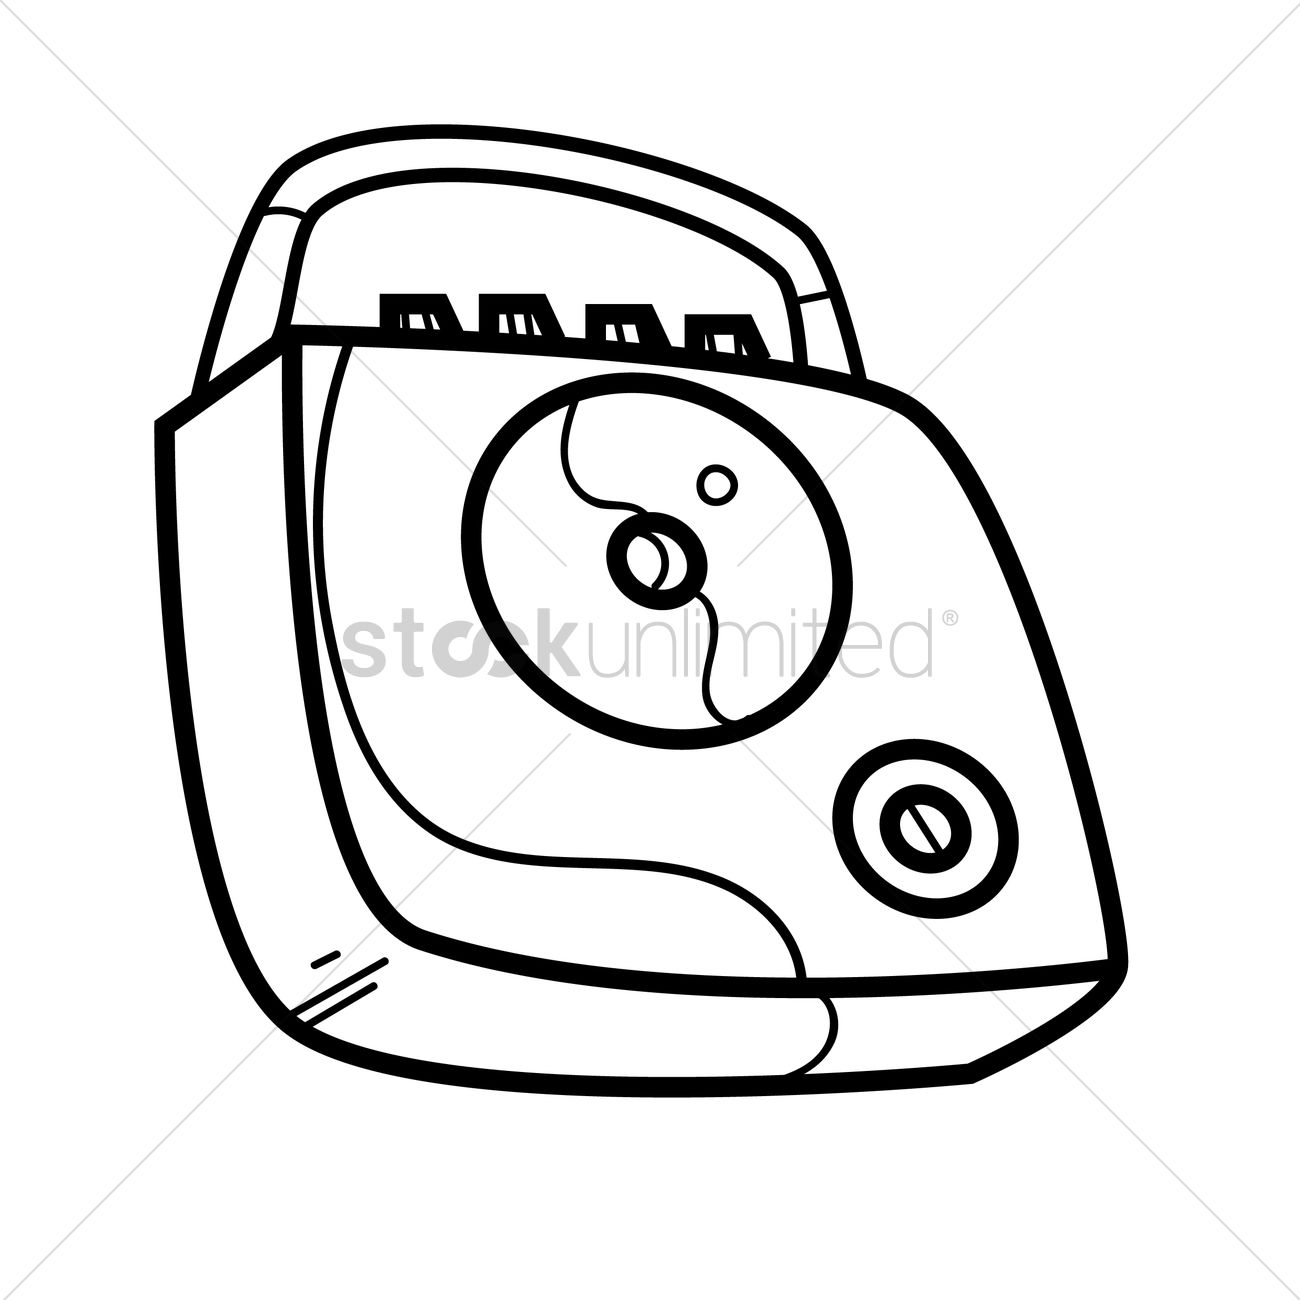 Free Cd Player Vector Image